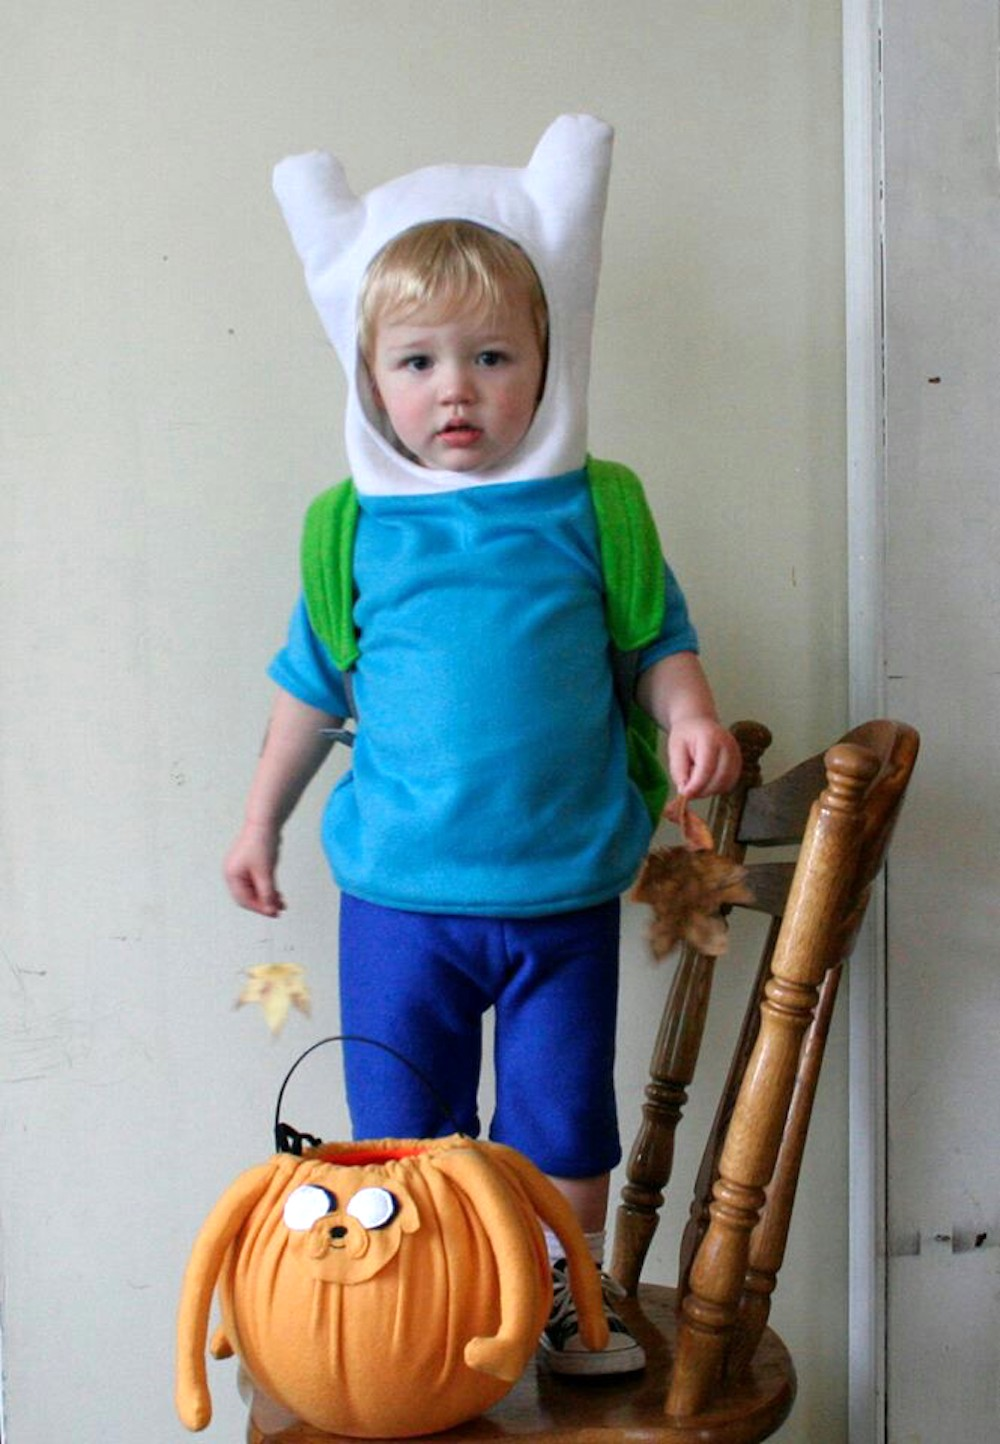 geek culture costumes for kids: finn the human from adventure time